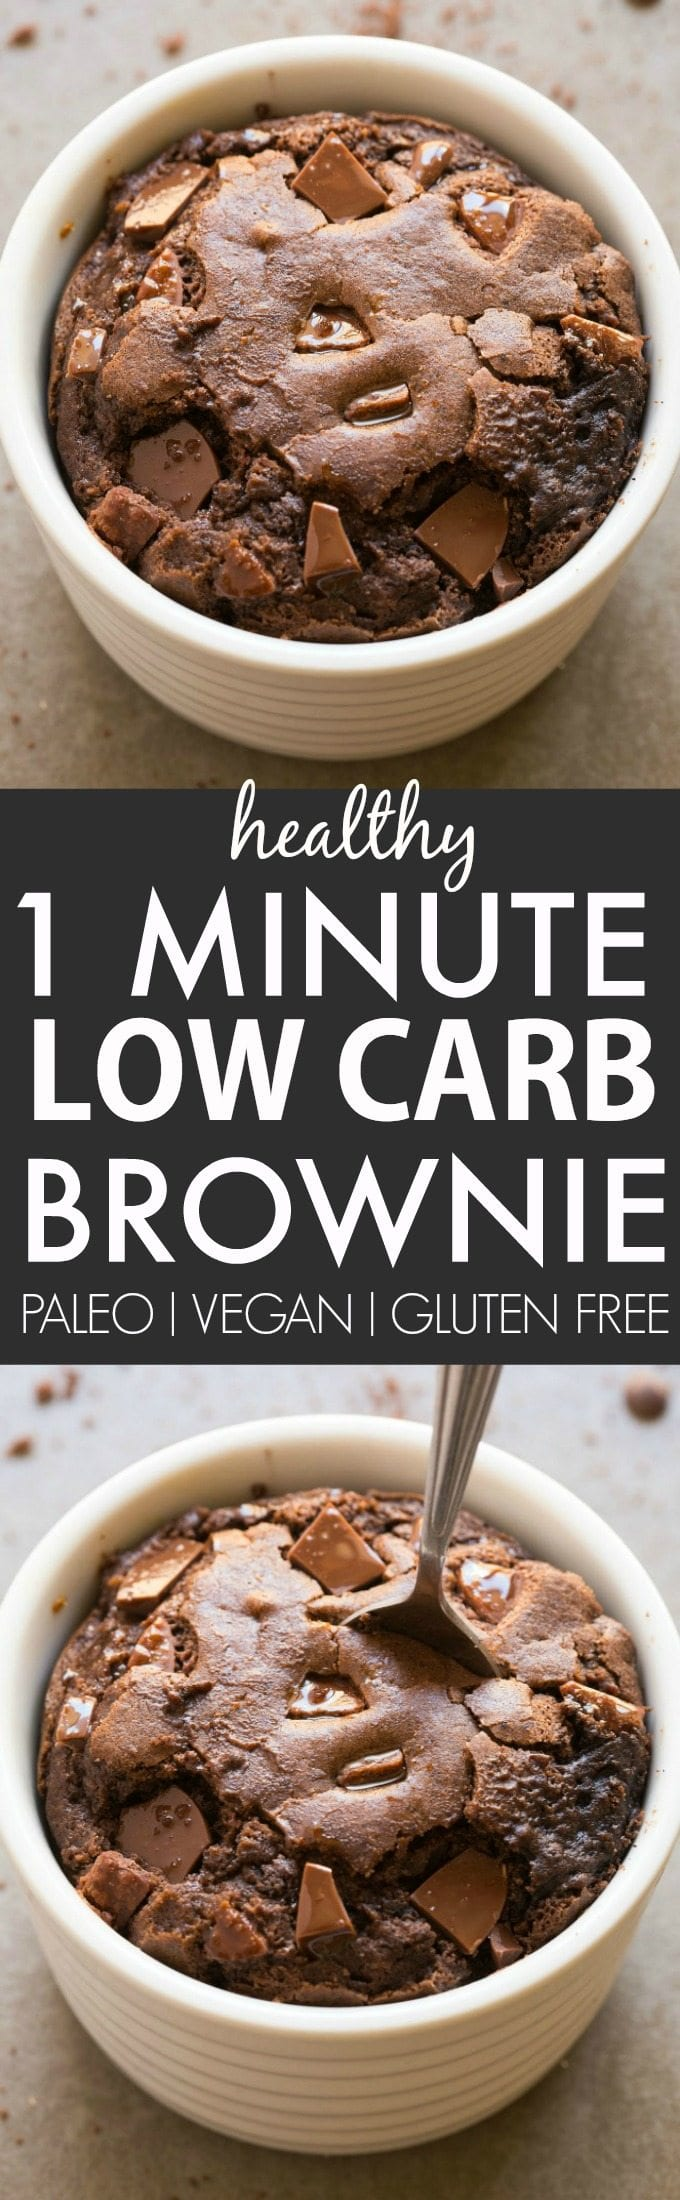 dIET LOW CARB BROWNIE